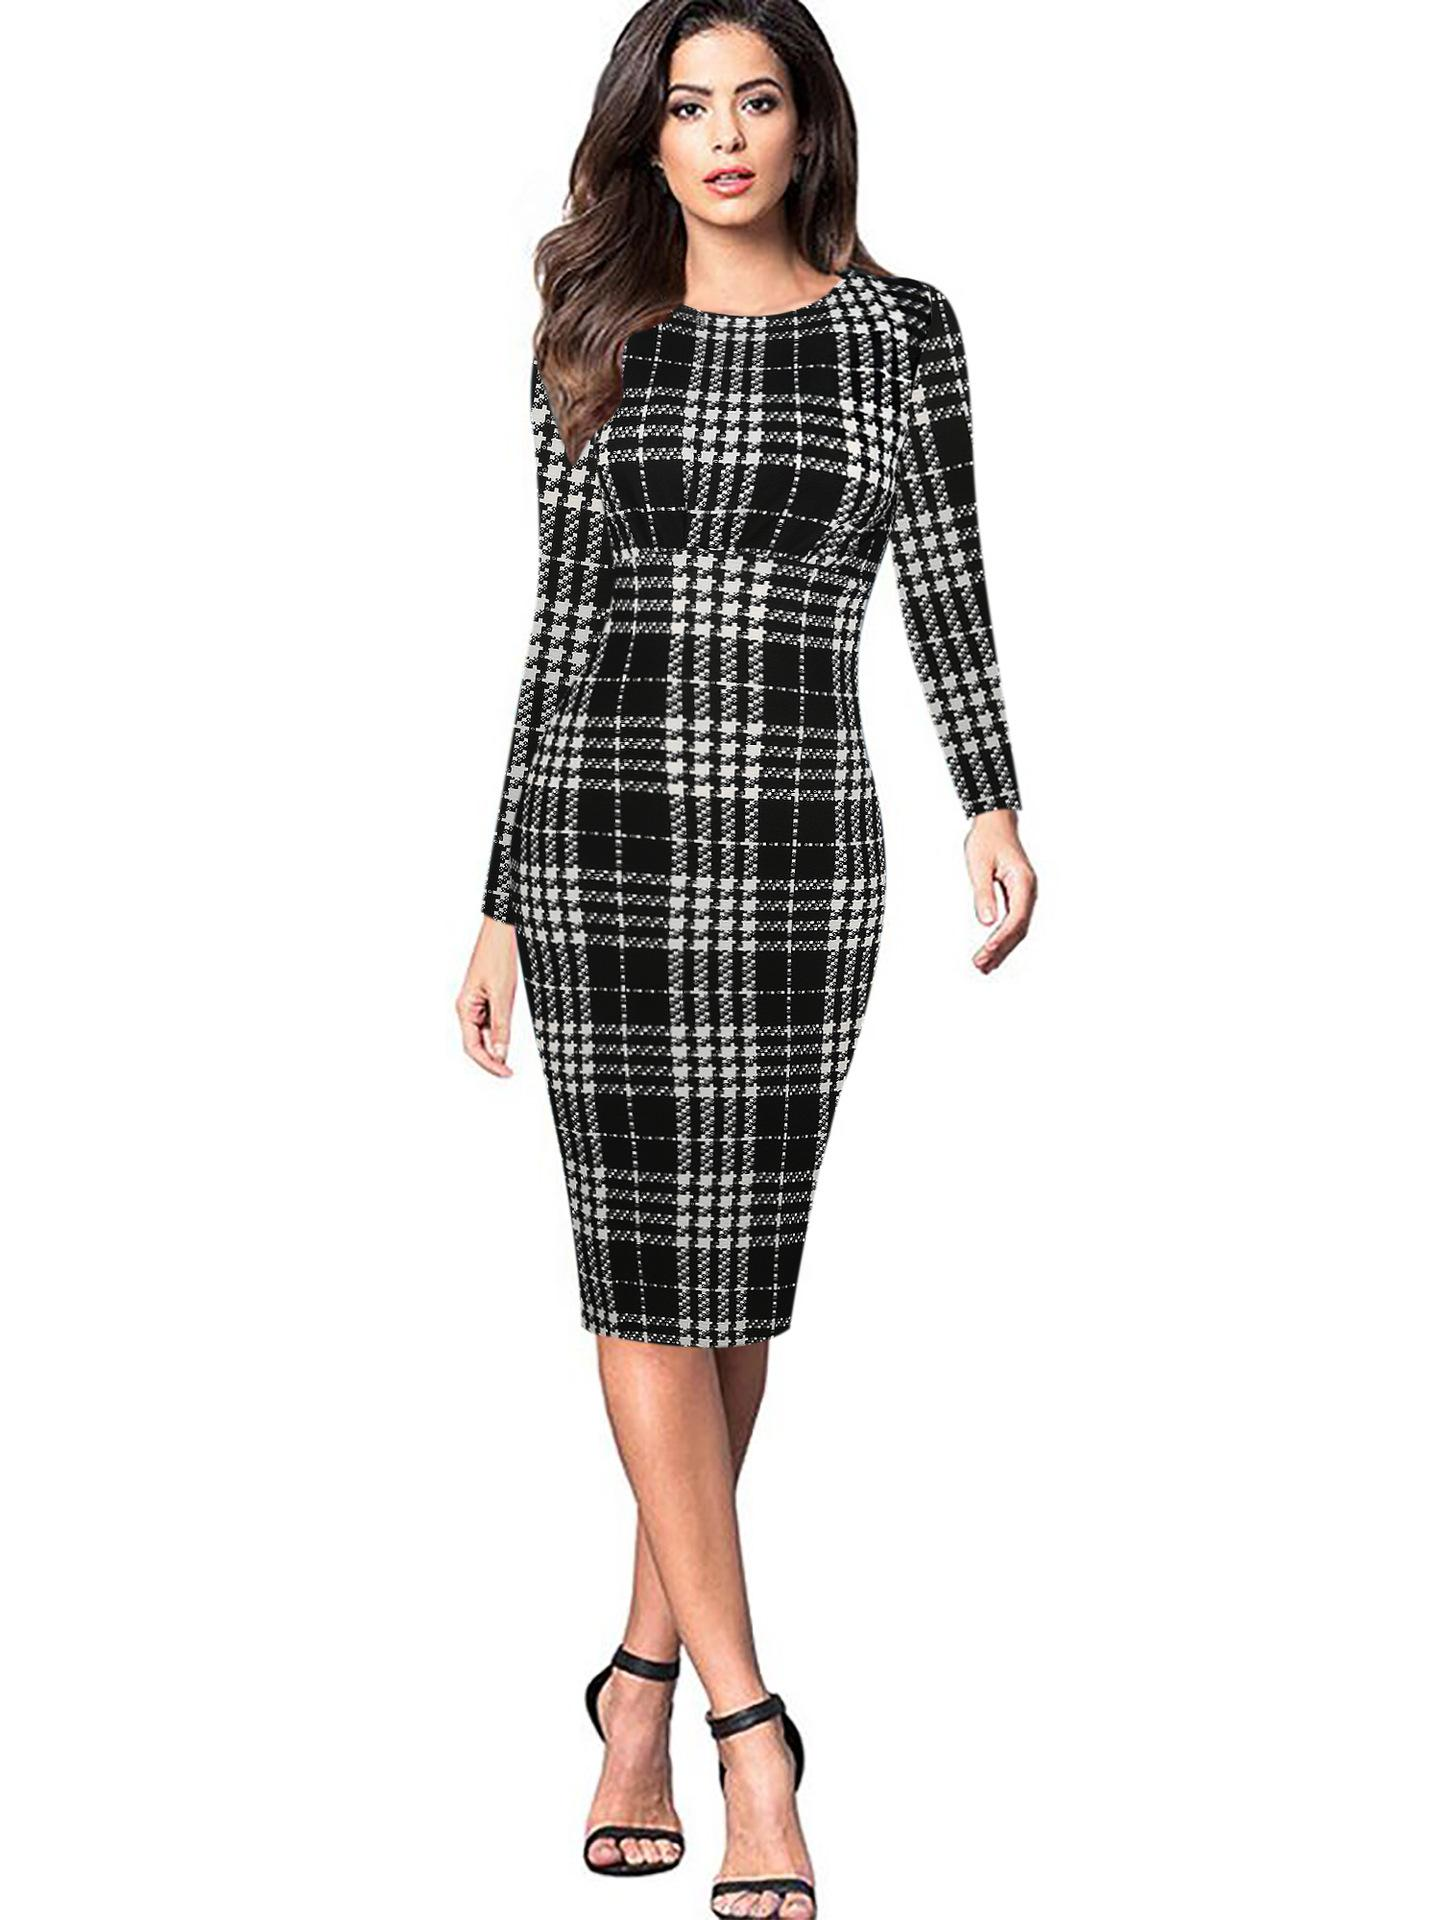 MAYFULL S-2XL QUALITY Women o-neck full sleeve empire plaid dress lady  spring brief work office formal pencil dress plus size